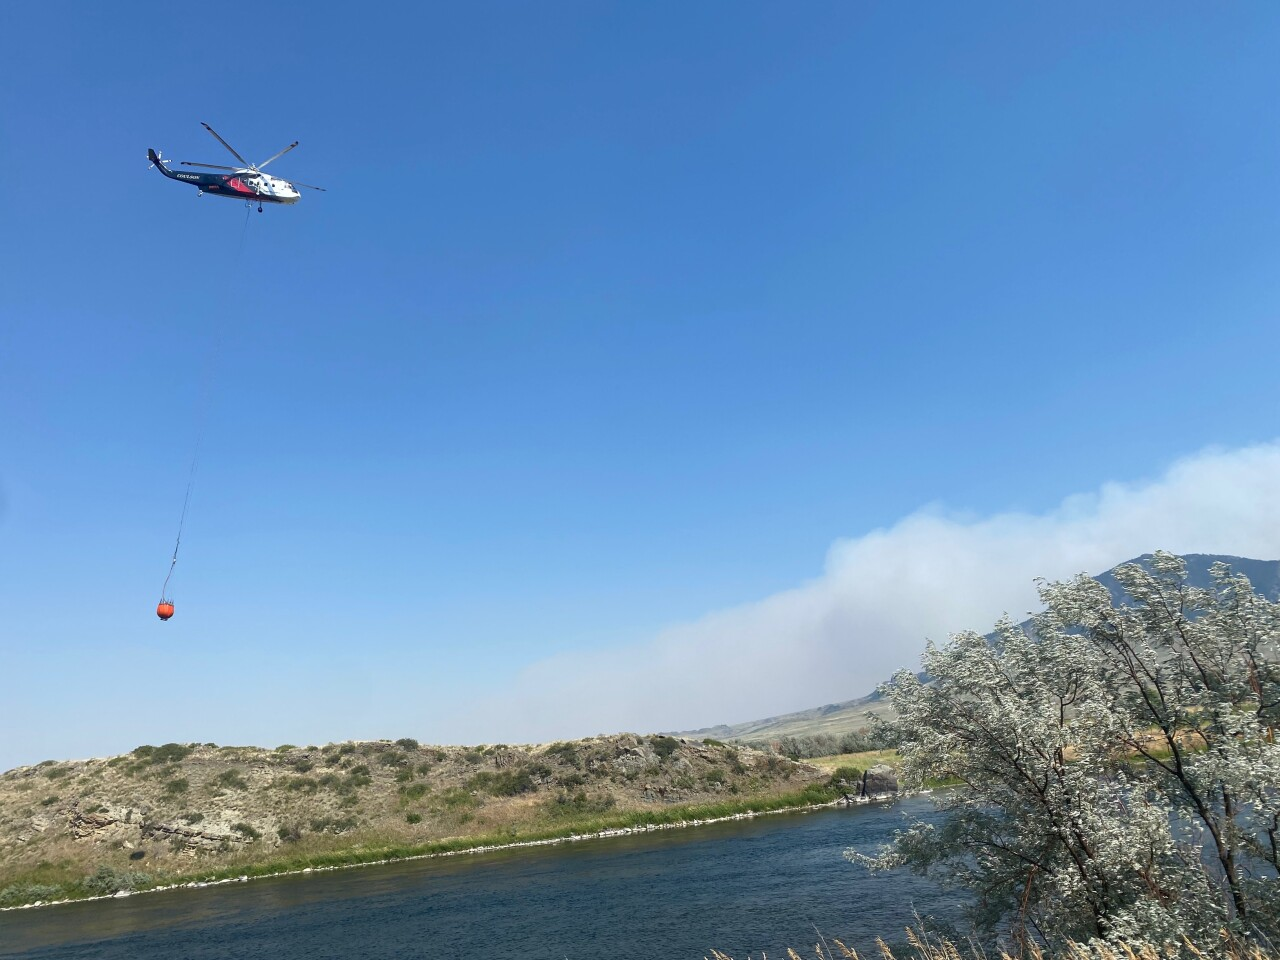 Wildfire reported between Craig and Cascade